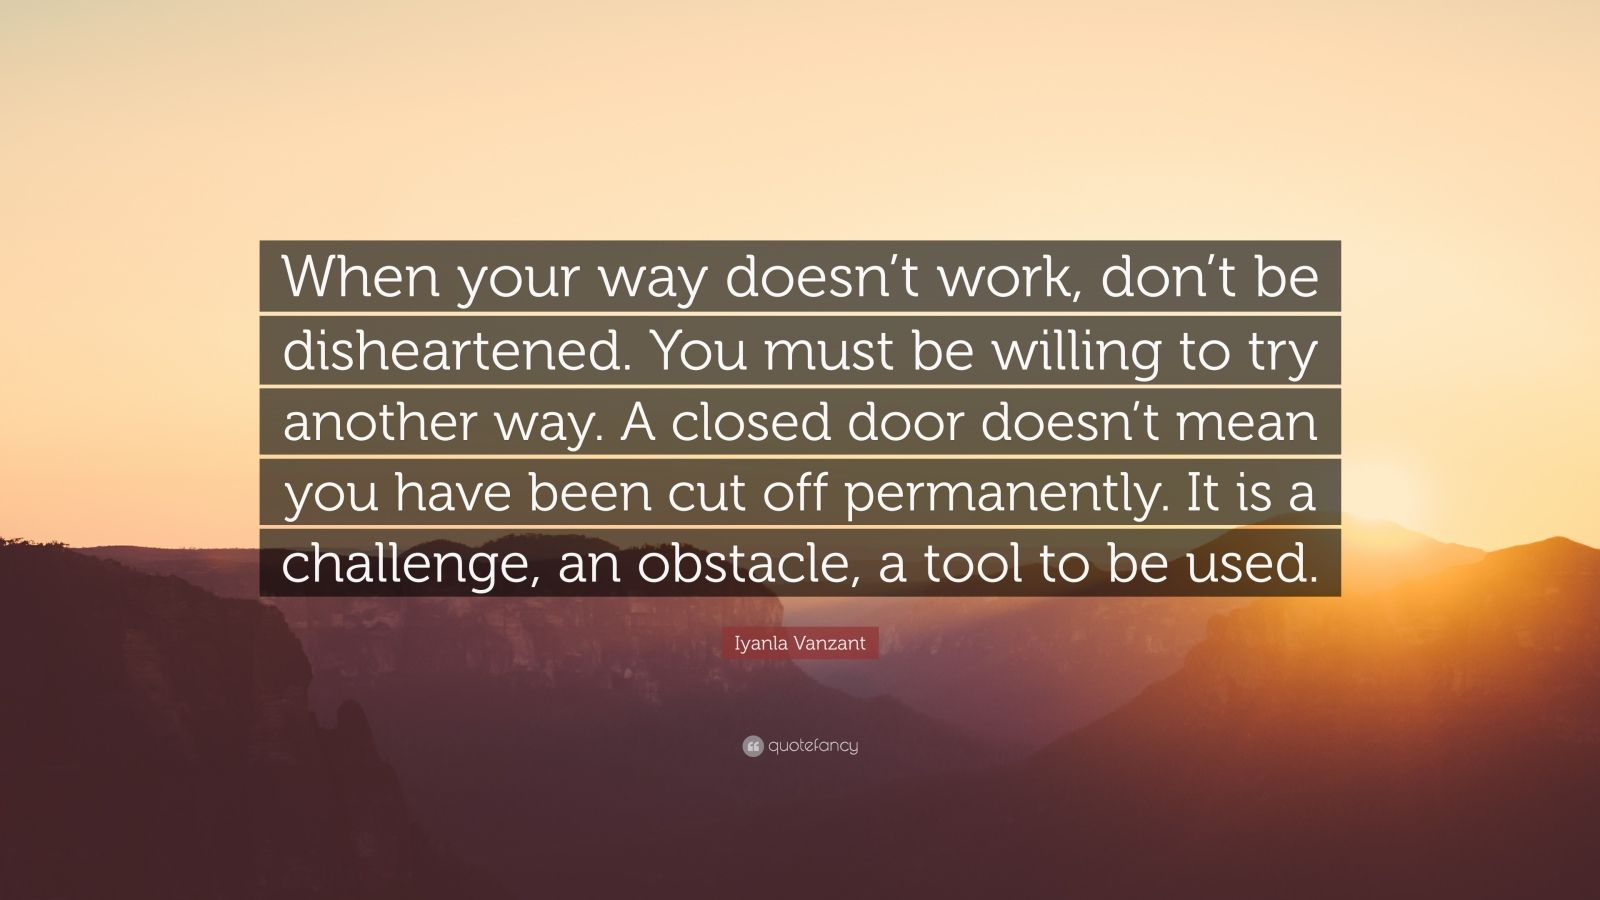 """Iyanla Vanzant Quote: """"When your way doesn't work, don't be disheartened. You must be willing to try another way. A closed door doesn't mean you have been cut off permanently. It is a challenge, an obstacle, a tool to be used."""""""